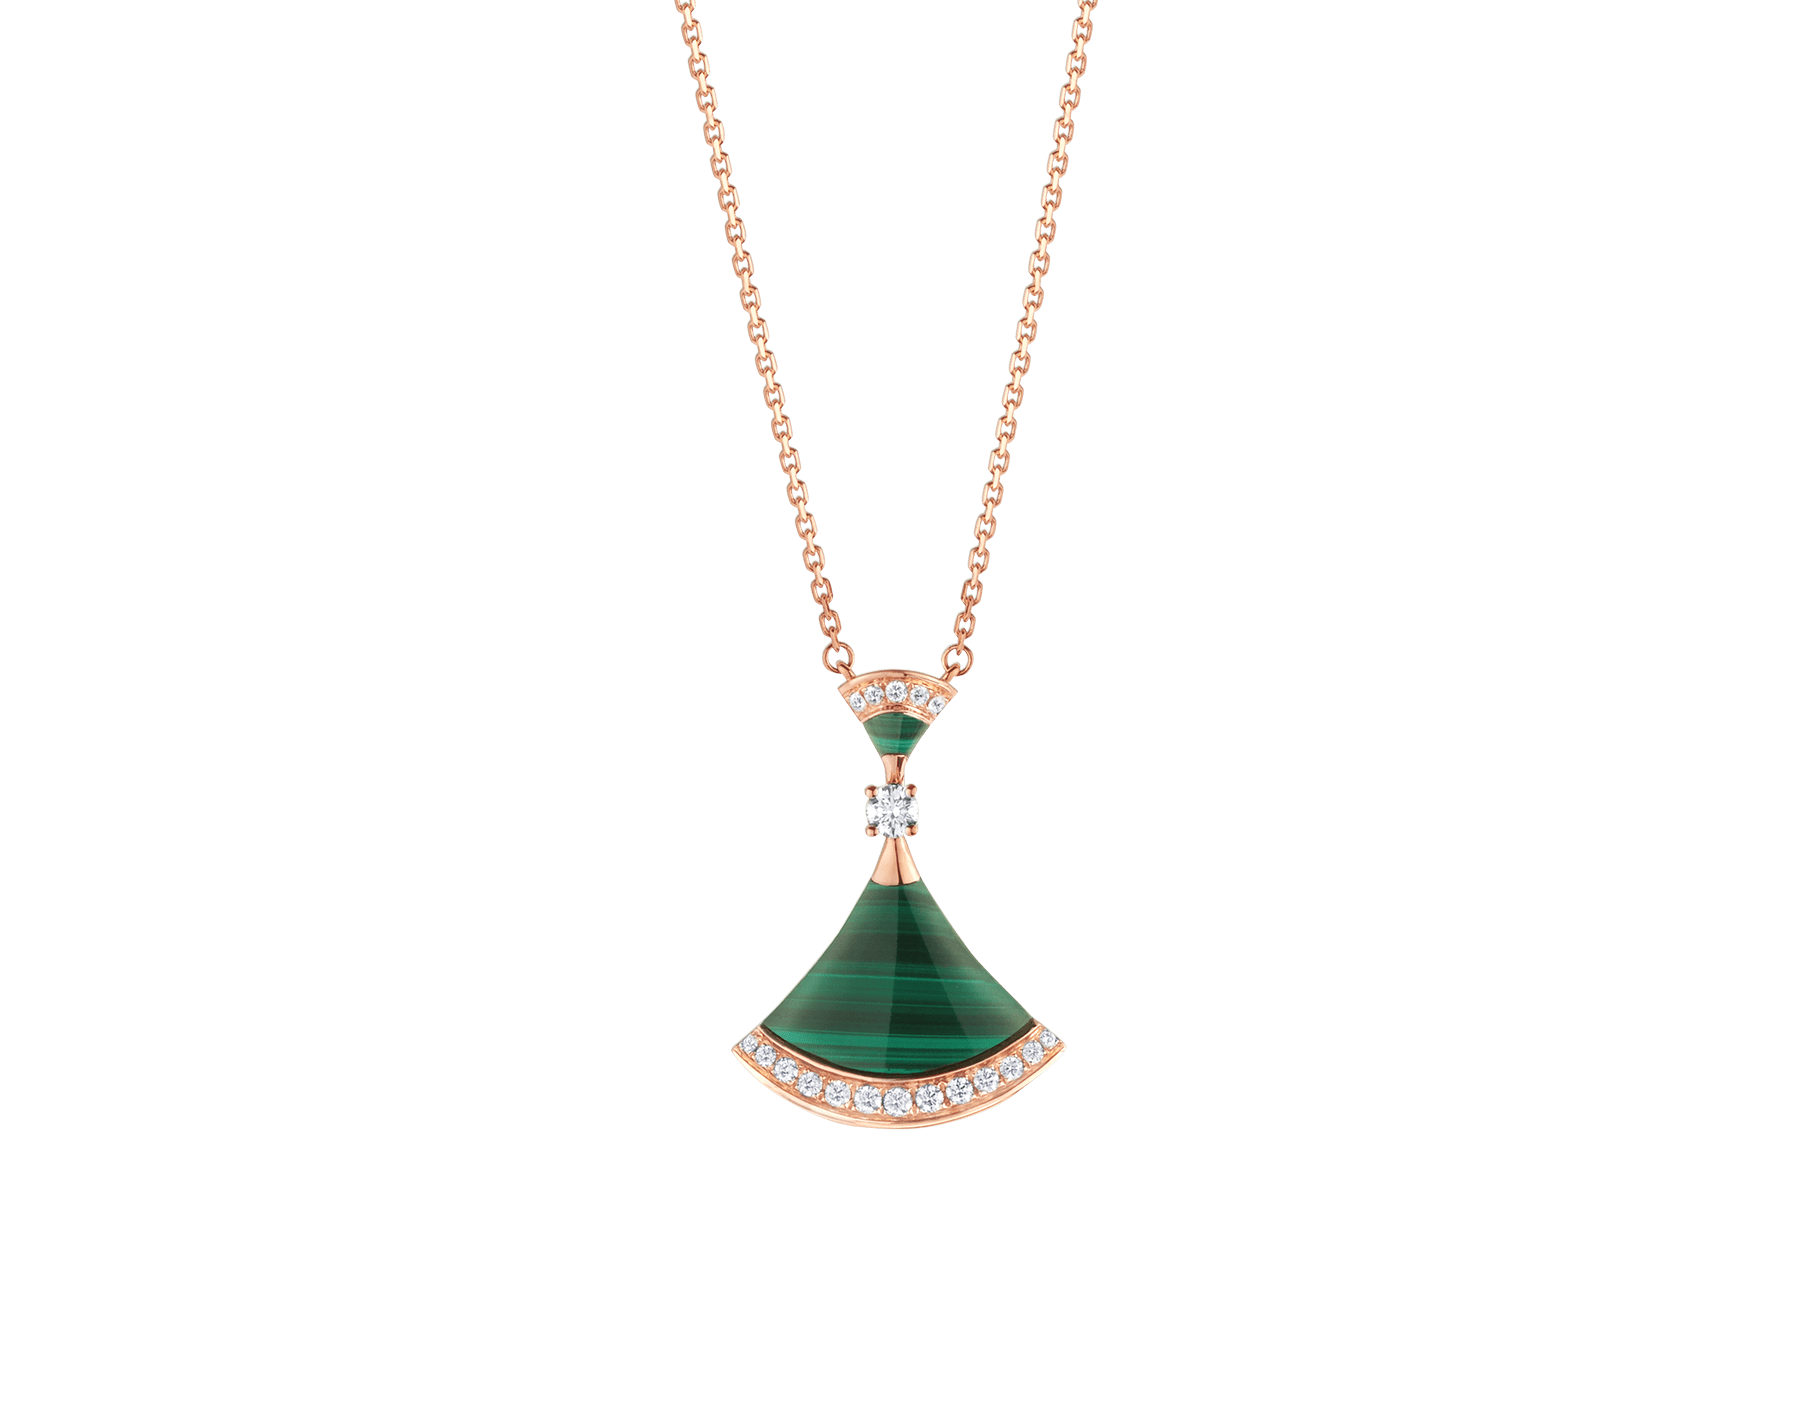 DIVAS' DREAM necklace in 18 kt rose gold with pendant set with a diamond, malachite elements and pavé diamonds. 351143 image 1